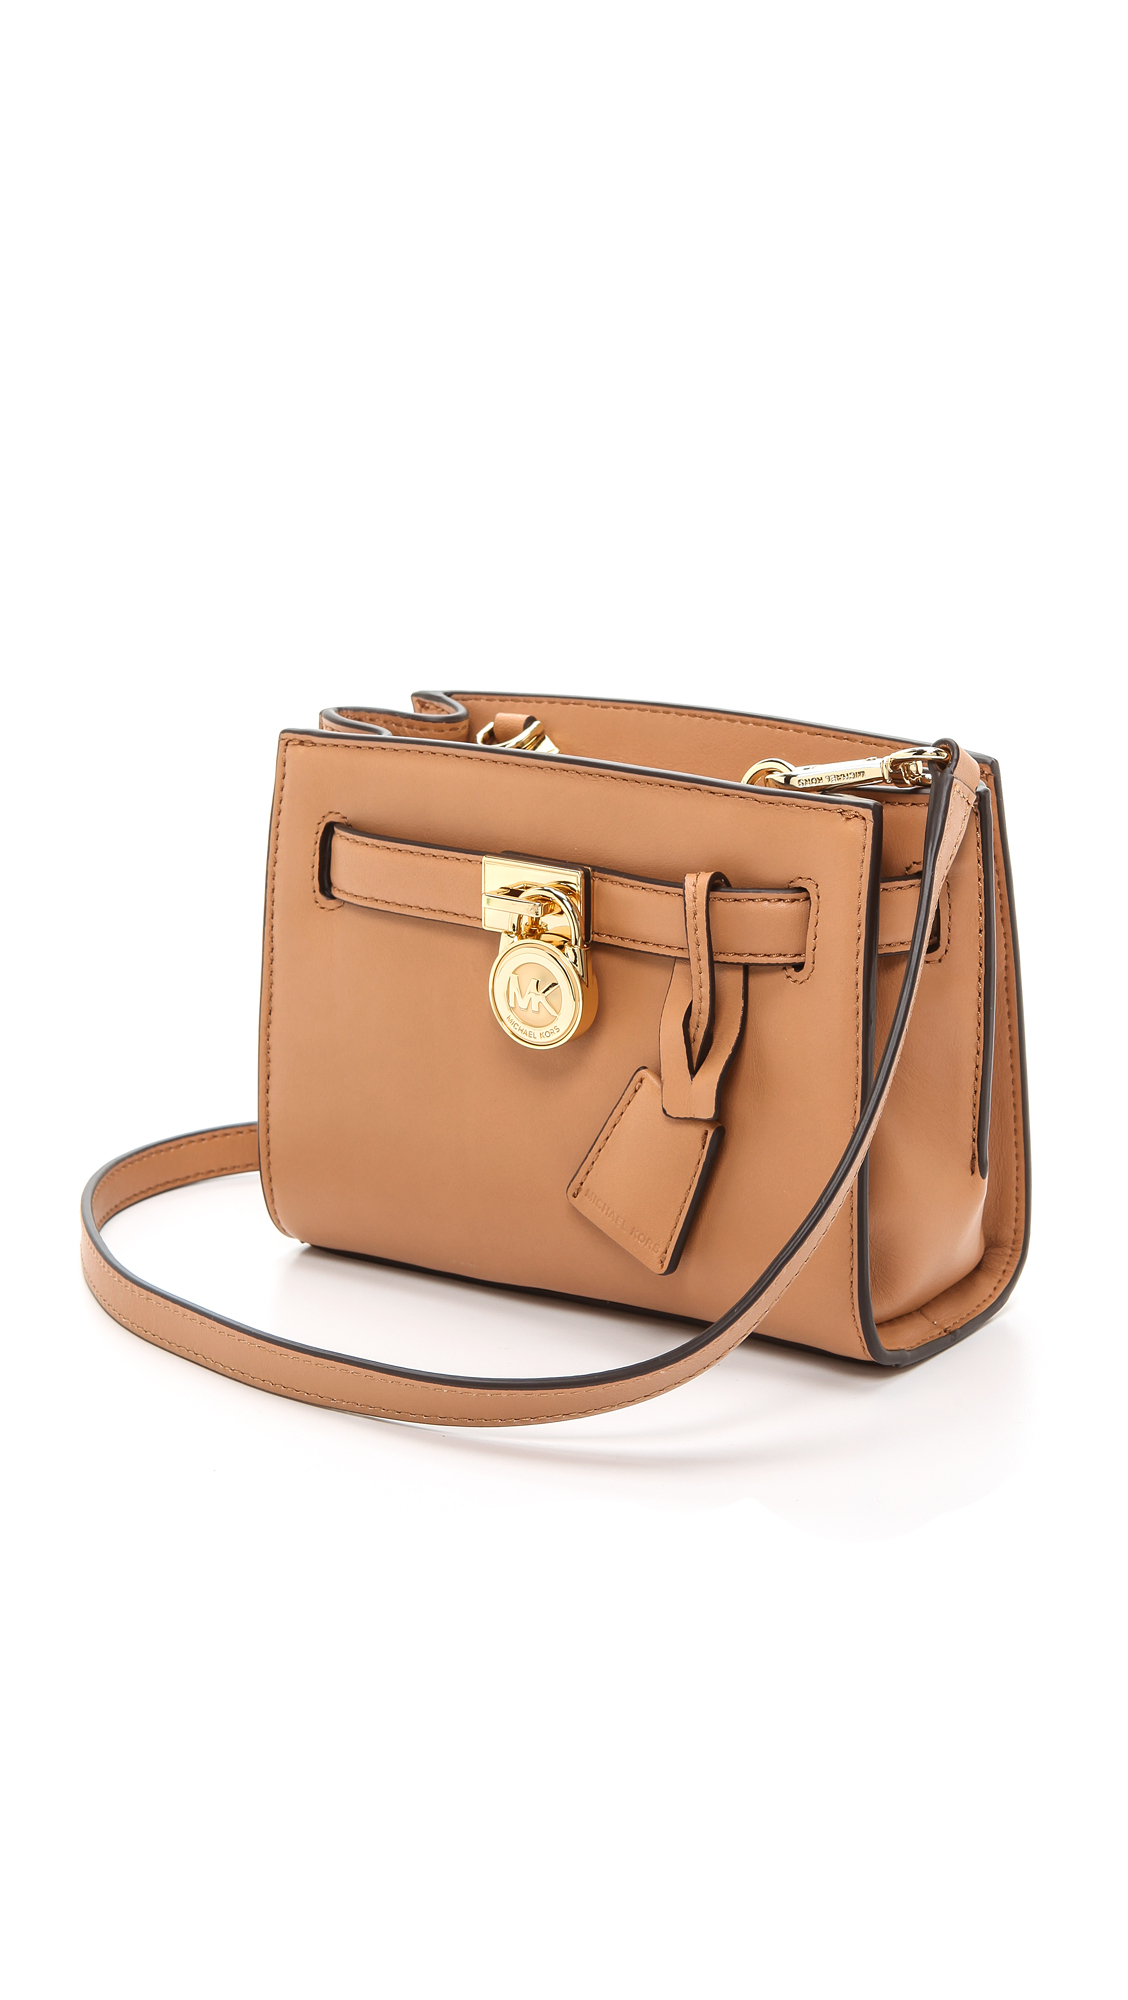 94858f11a97b1d Gallery. Previously sold at: Shopbop · Women's Michael By Michael Kors  Hamilton